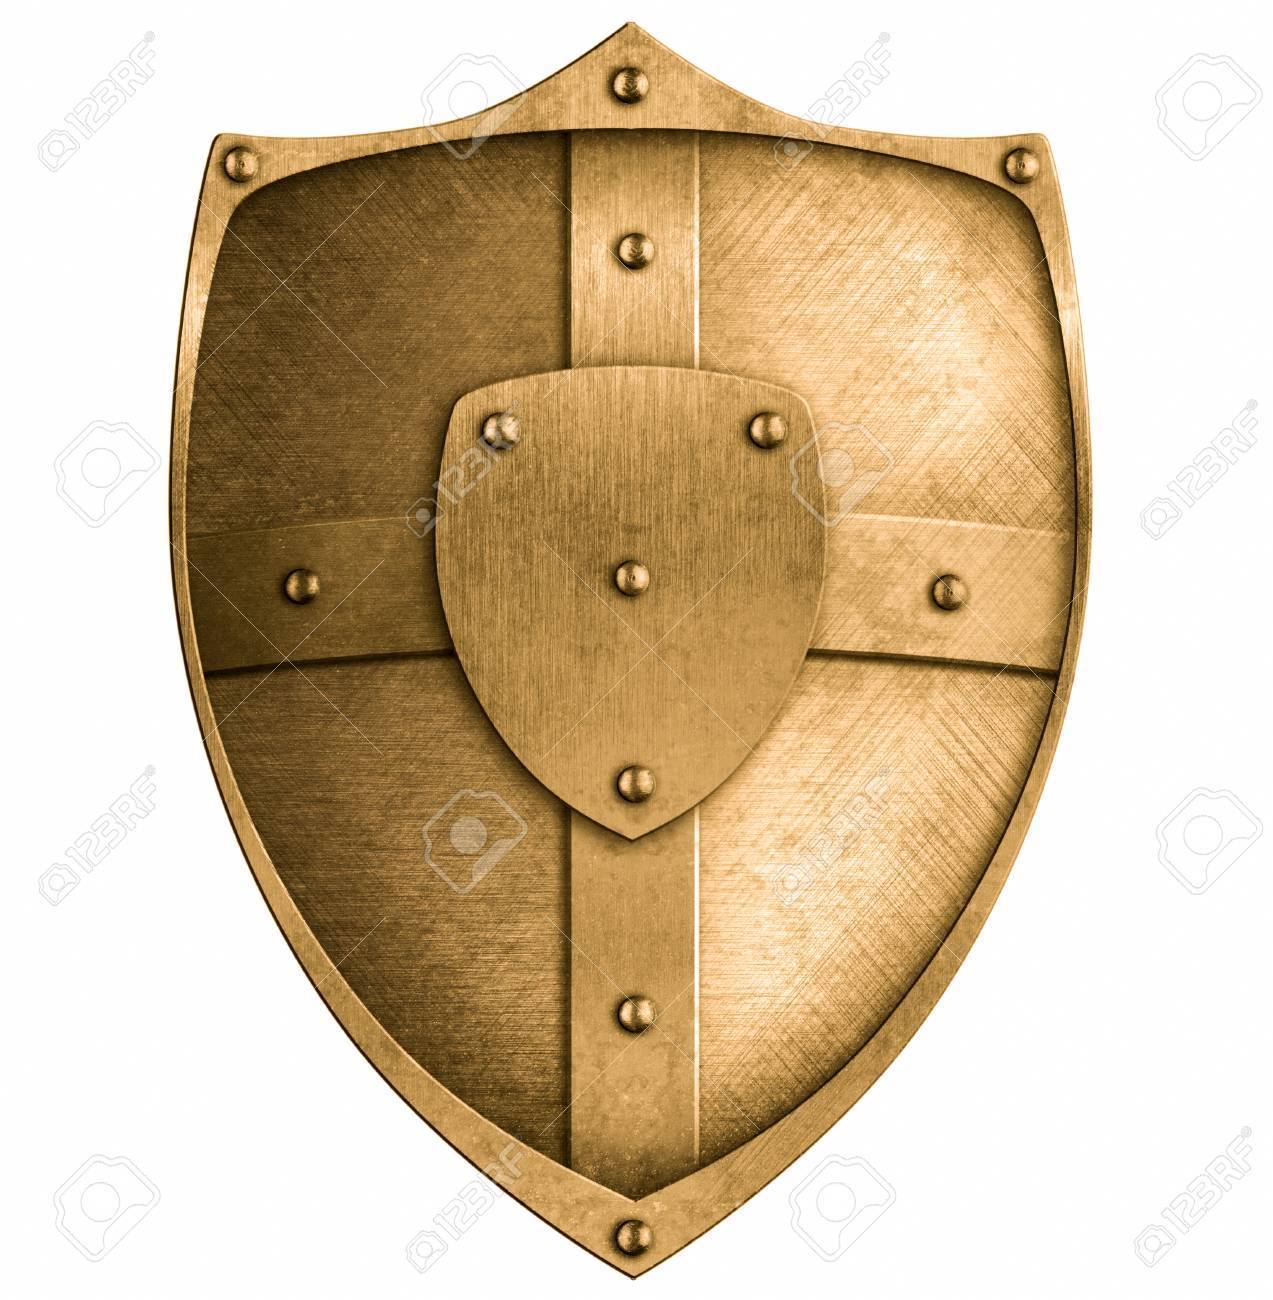 bronze metal shield isolated on white Stock Photo - 22217279